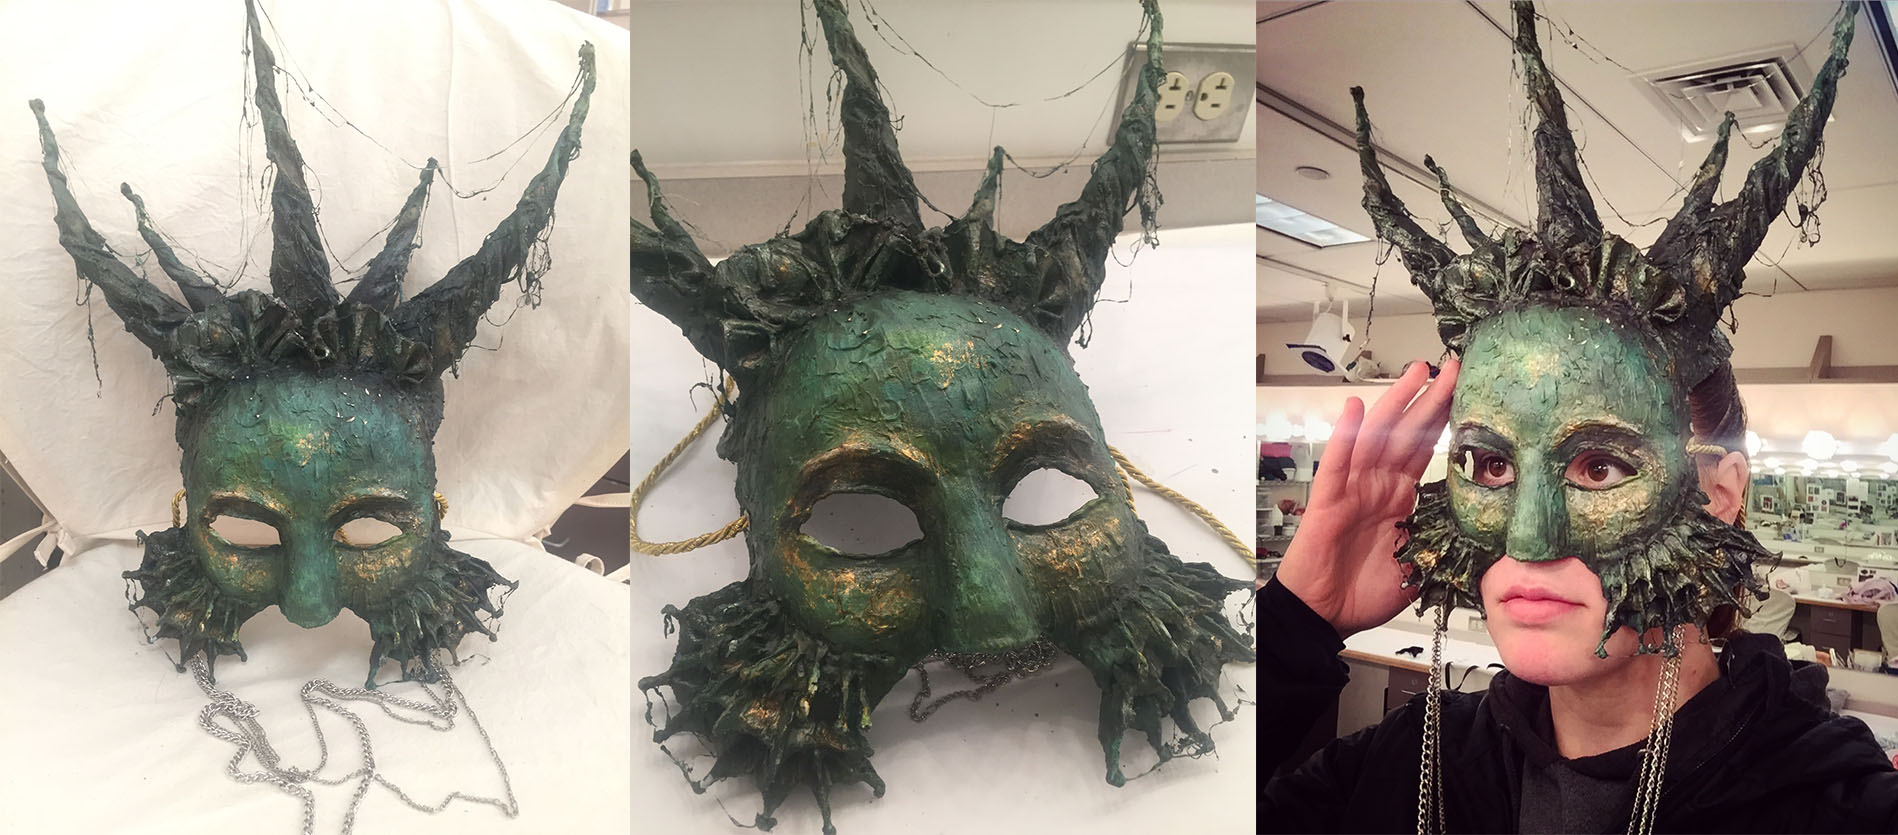 Wonderflex mask with hot glue and Joint Compound, finished with gold leading and acrylic paint. Sealed with a bee's wax and tar mixture